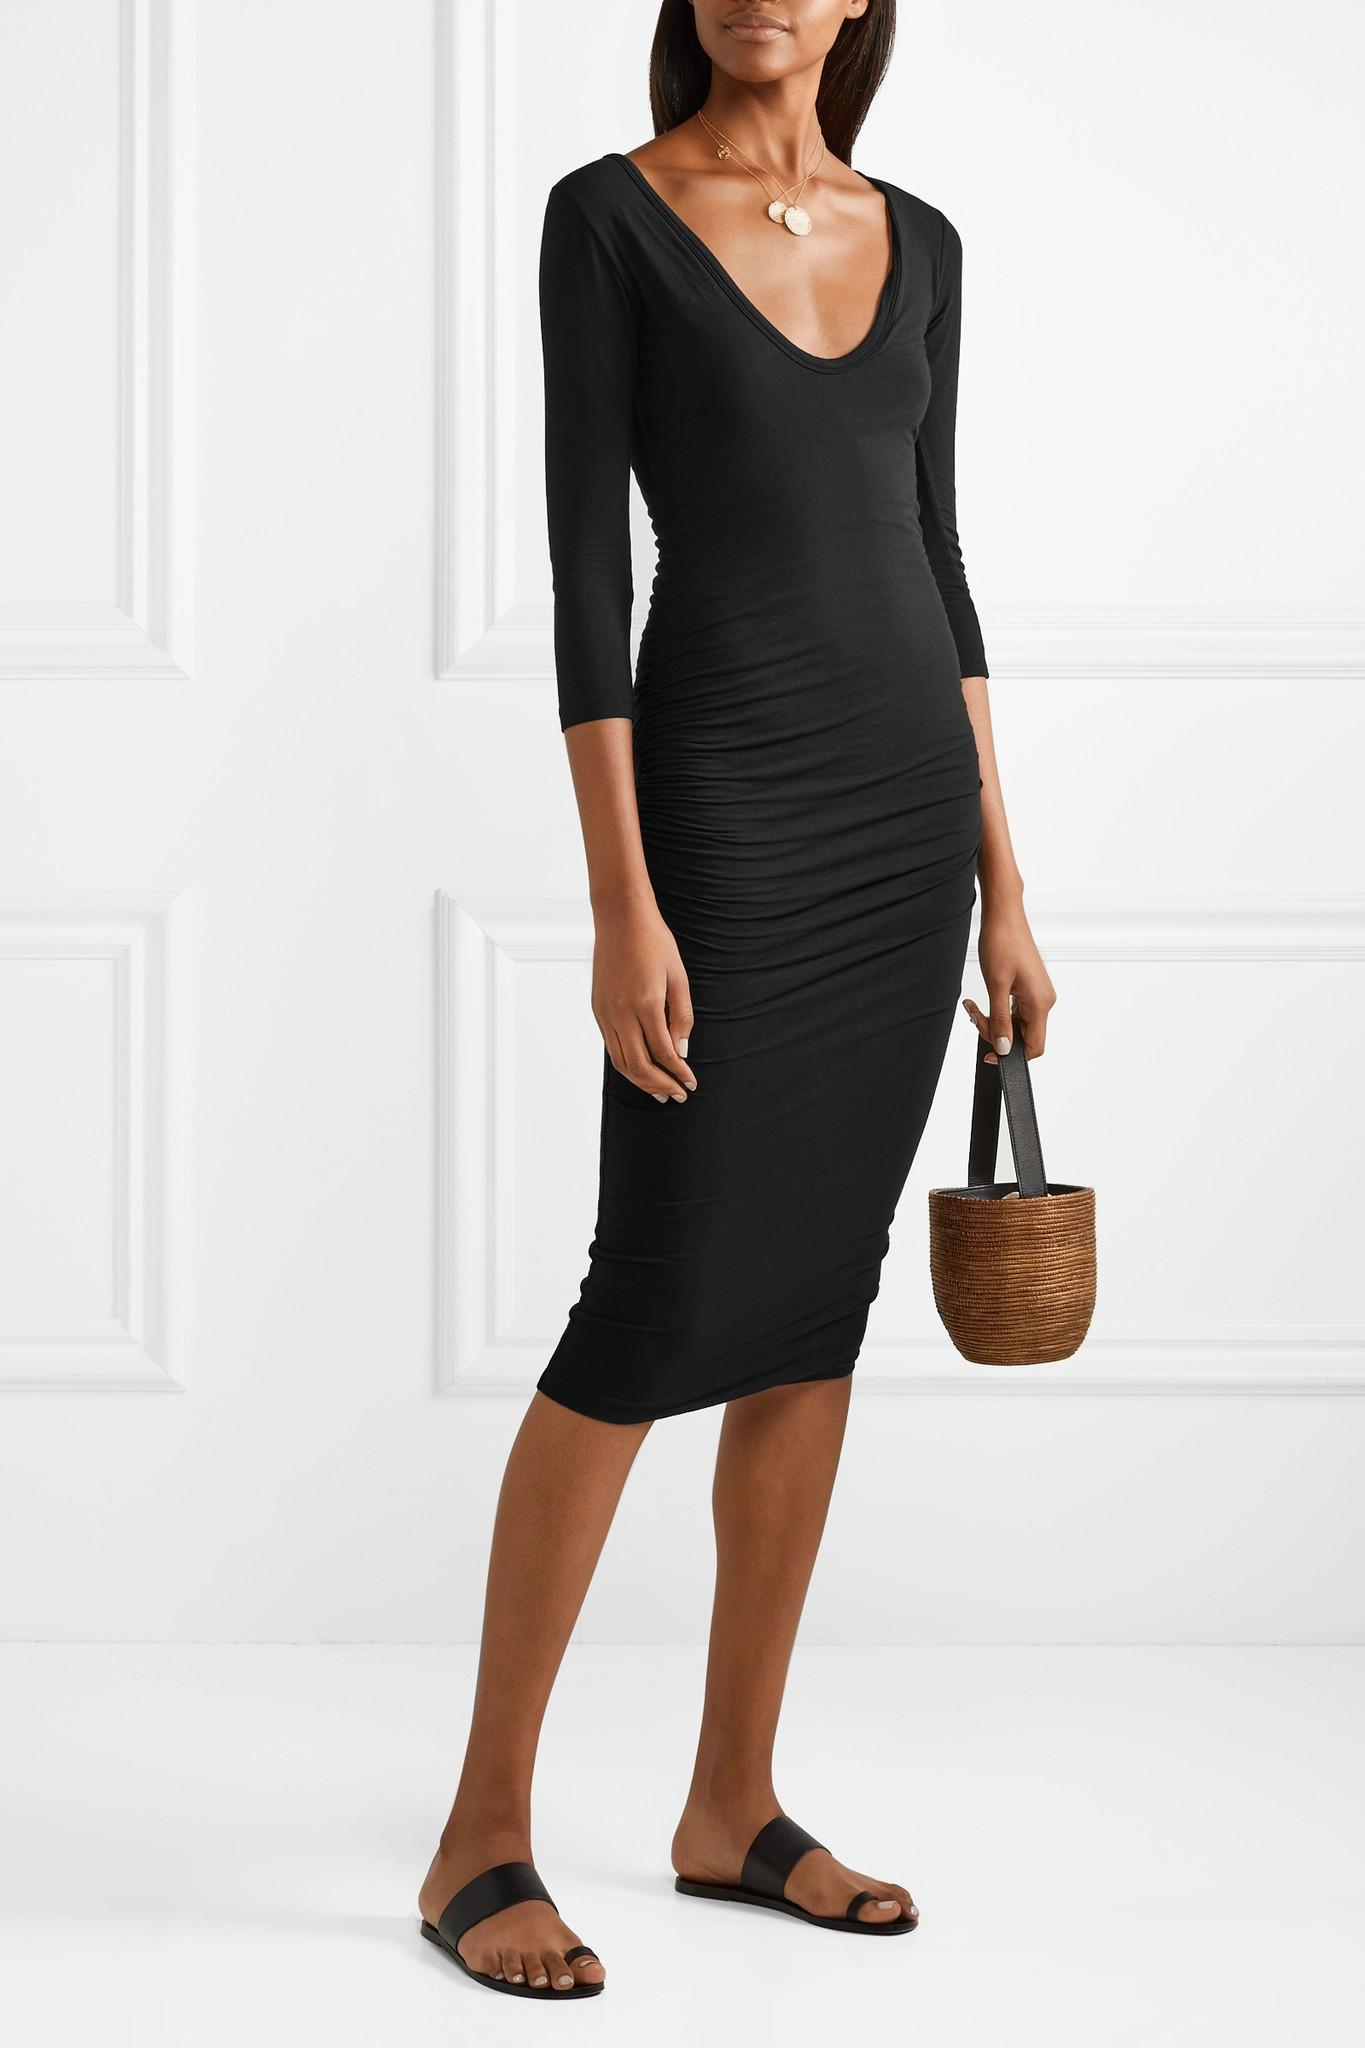 3a11a2b1151 James Perse - Black Ruched Stretch-cotton Jersey Dress - Lyst. View  fullscreen